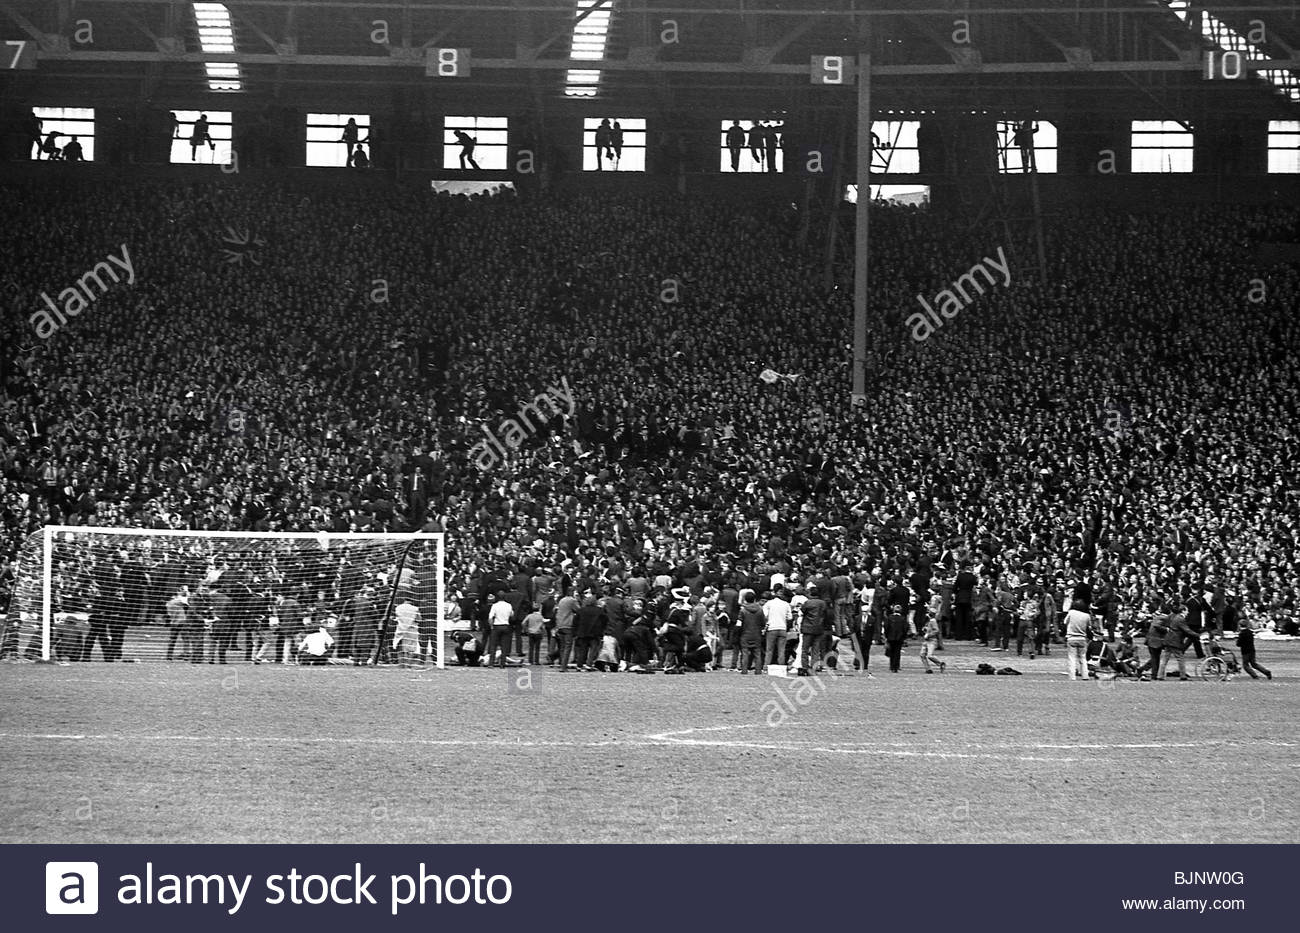 08/05/71 SCOTTISH CUP FINAL RANGERS V CELTIC (1-1) HAMPDEN - GLASGOW Police deal with trouble on the terraces. - Stock Image